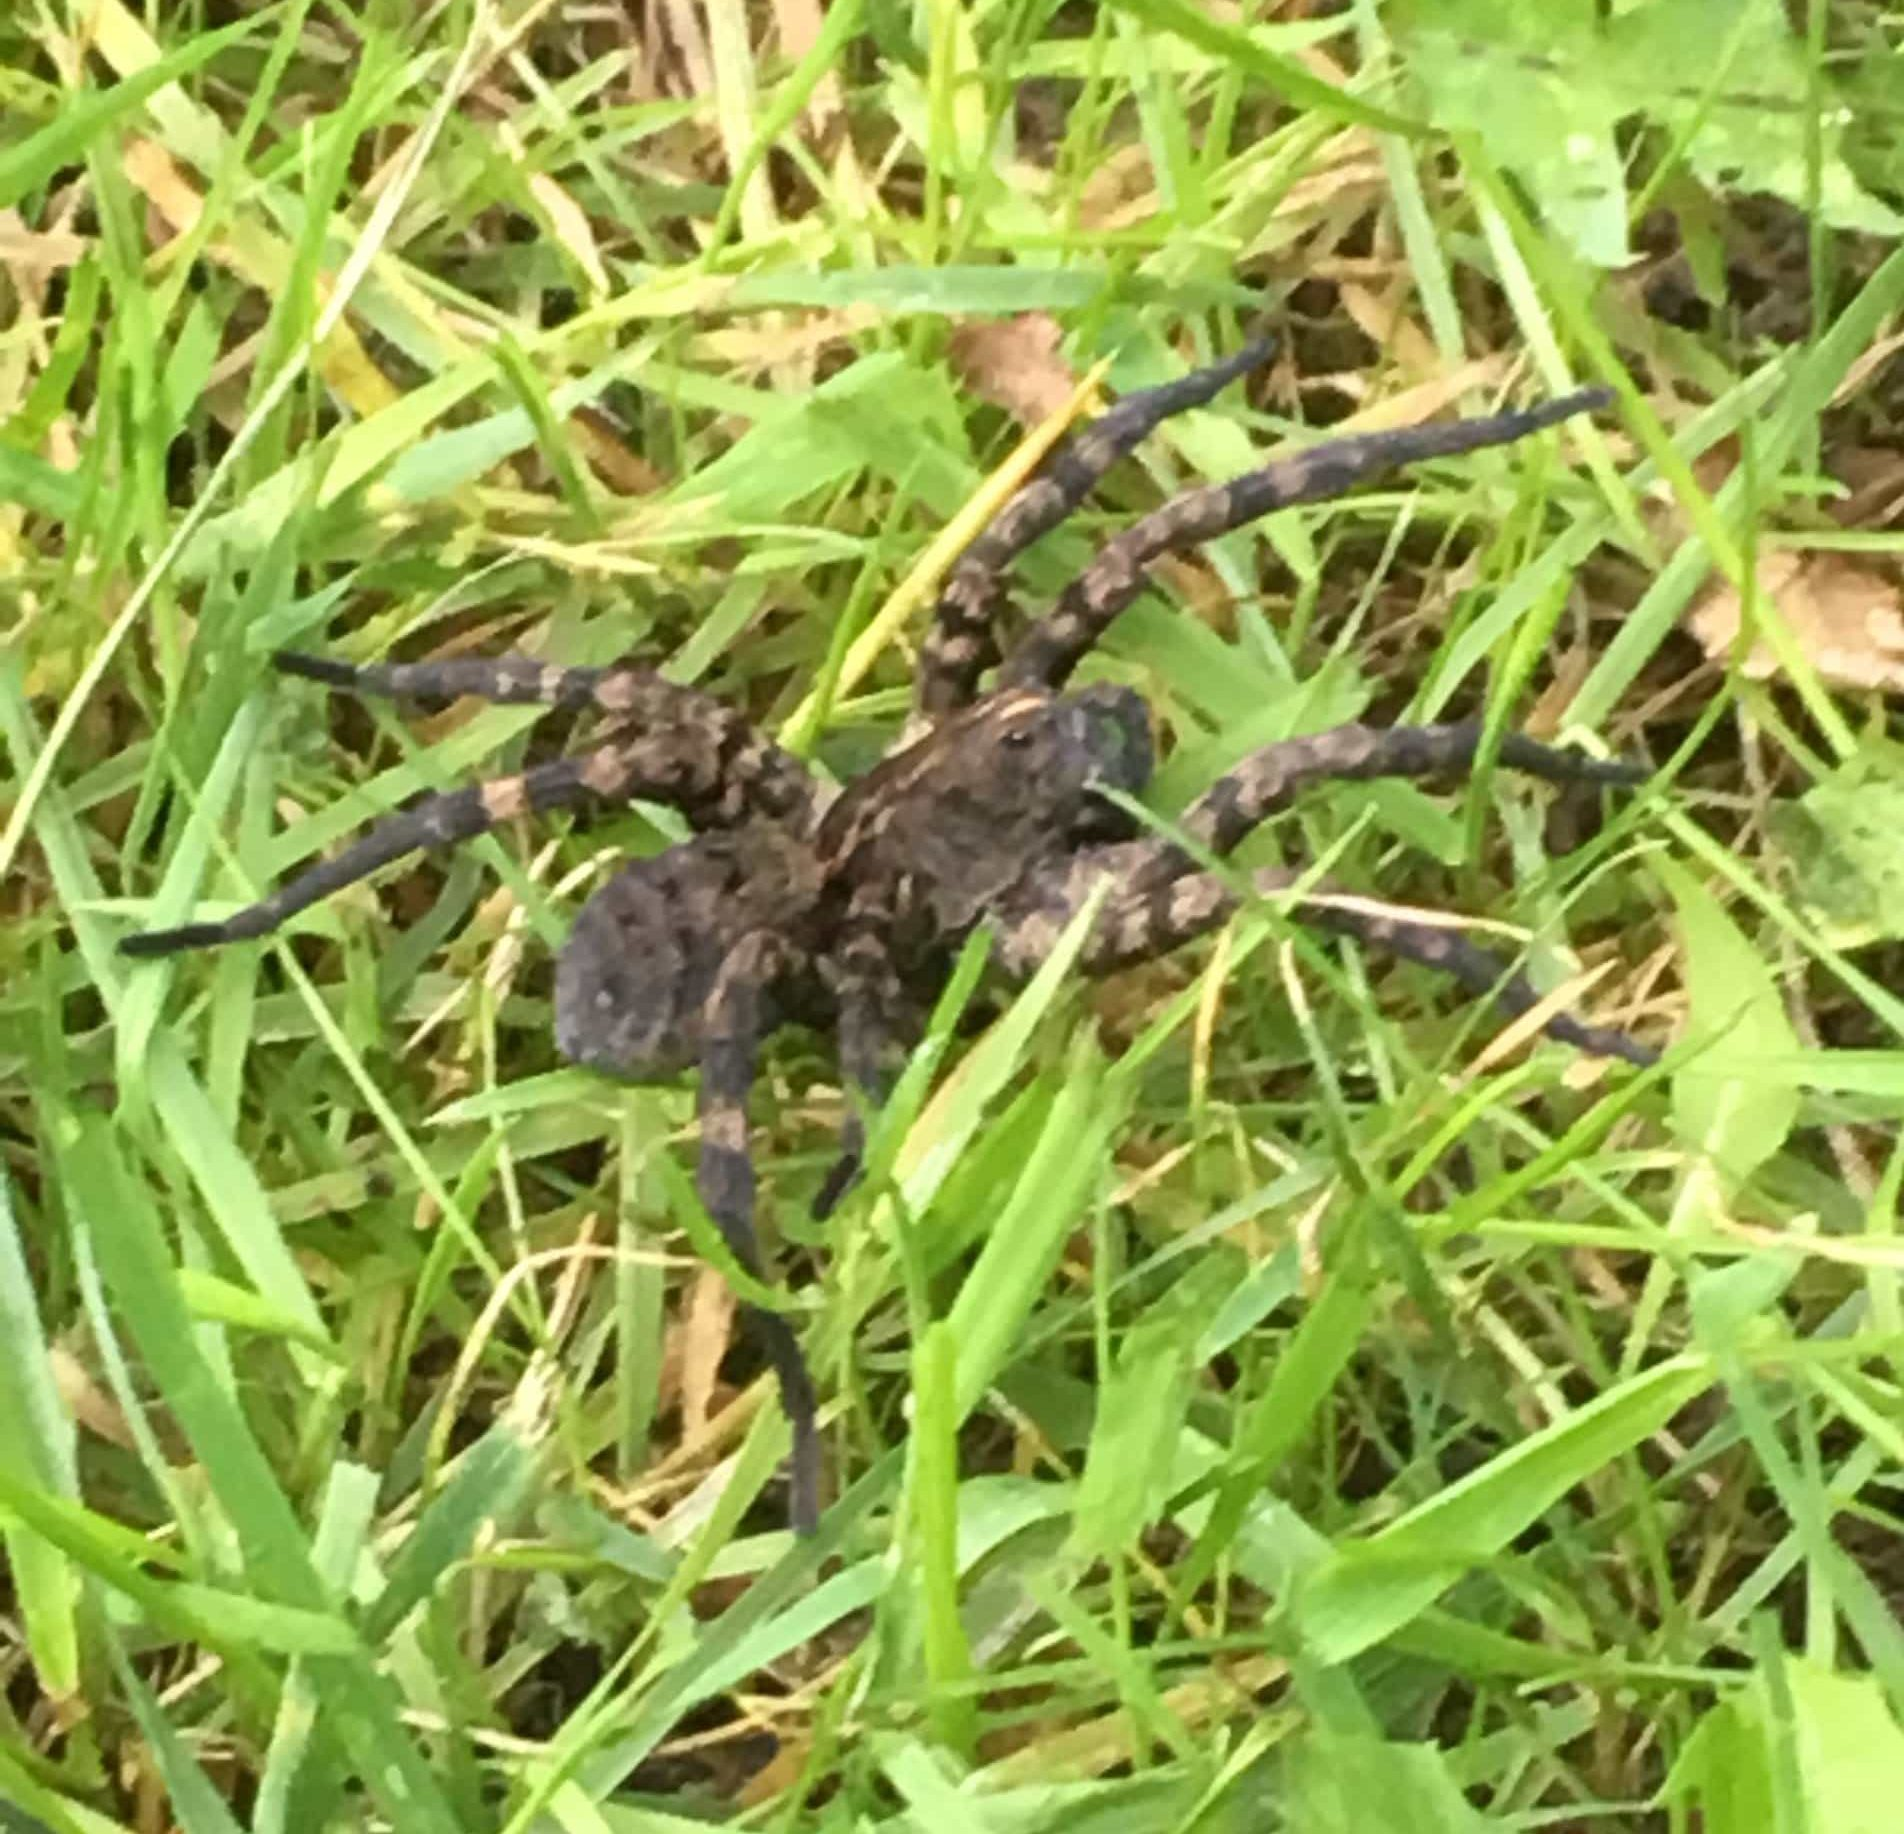 Picture of Tigrosa aspersa (Tiger Wolf Spider) - Lateral